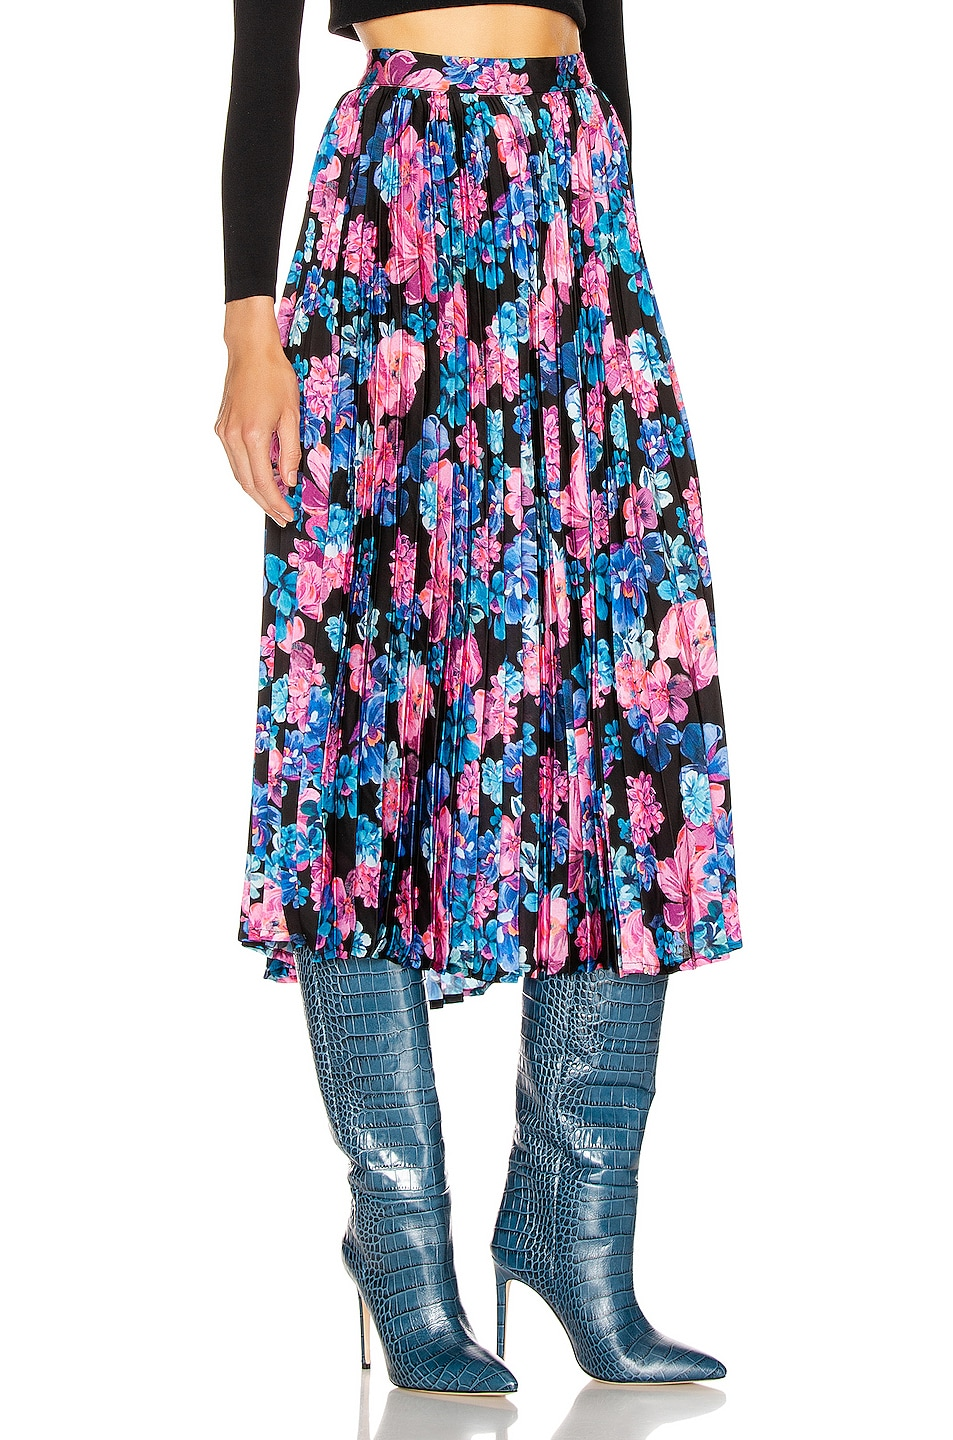 Image 2 of ANDAMANE Becky Pleated Midi Skirt in Floral Multi Black